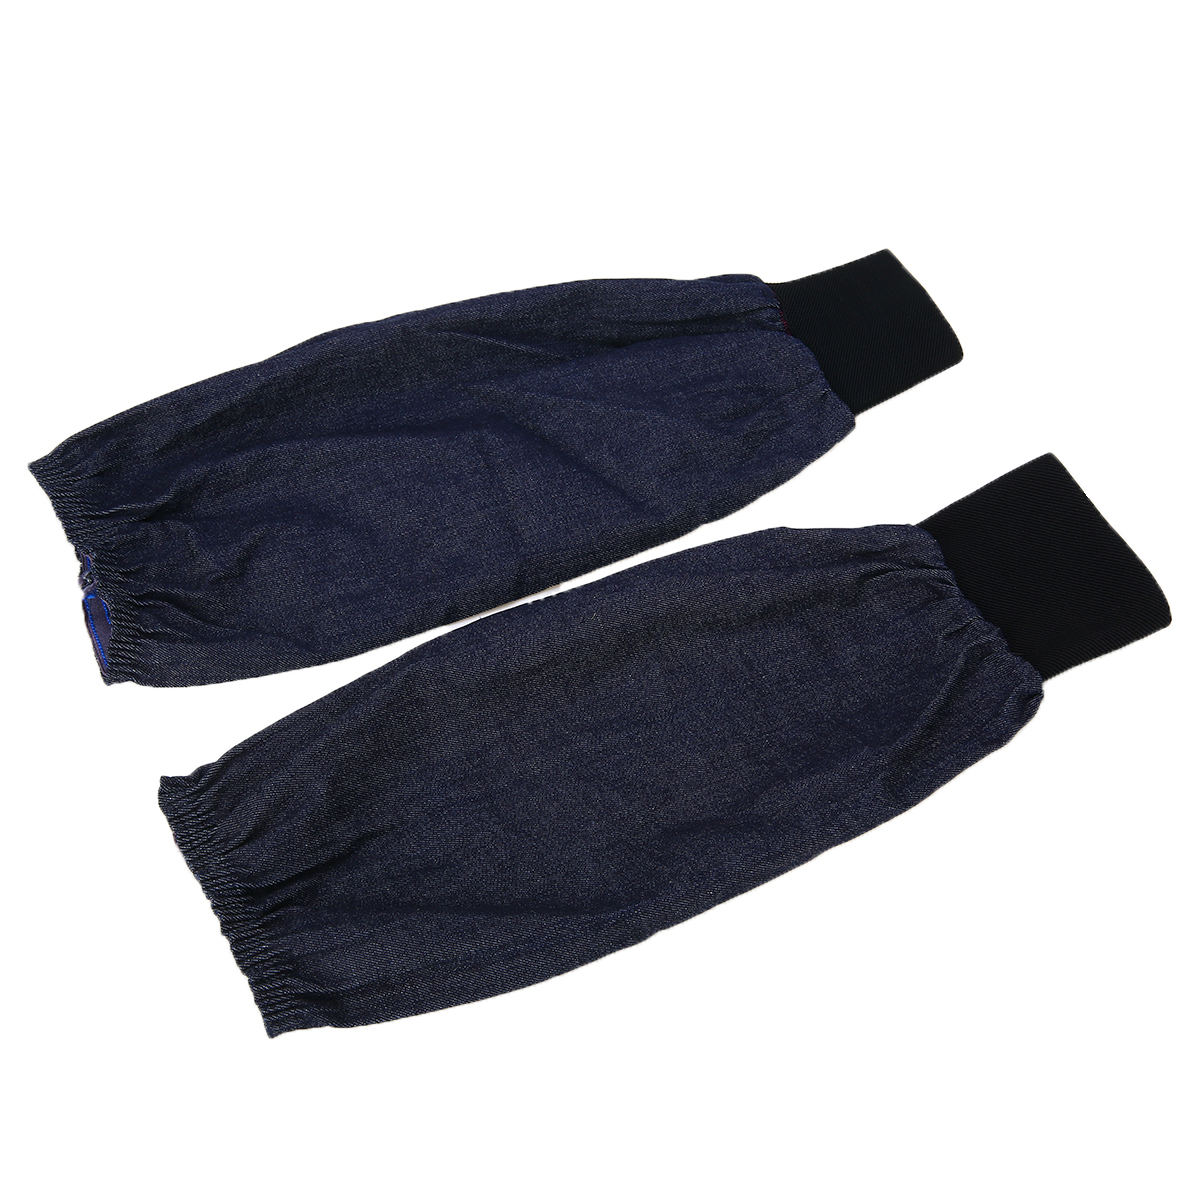 1 Pair Welding Arm Sleeves Denim Working Sleeves Cut Resistant Heat Safety Work for Welding Cutting Hand Arm Guard Protection